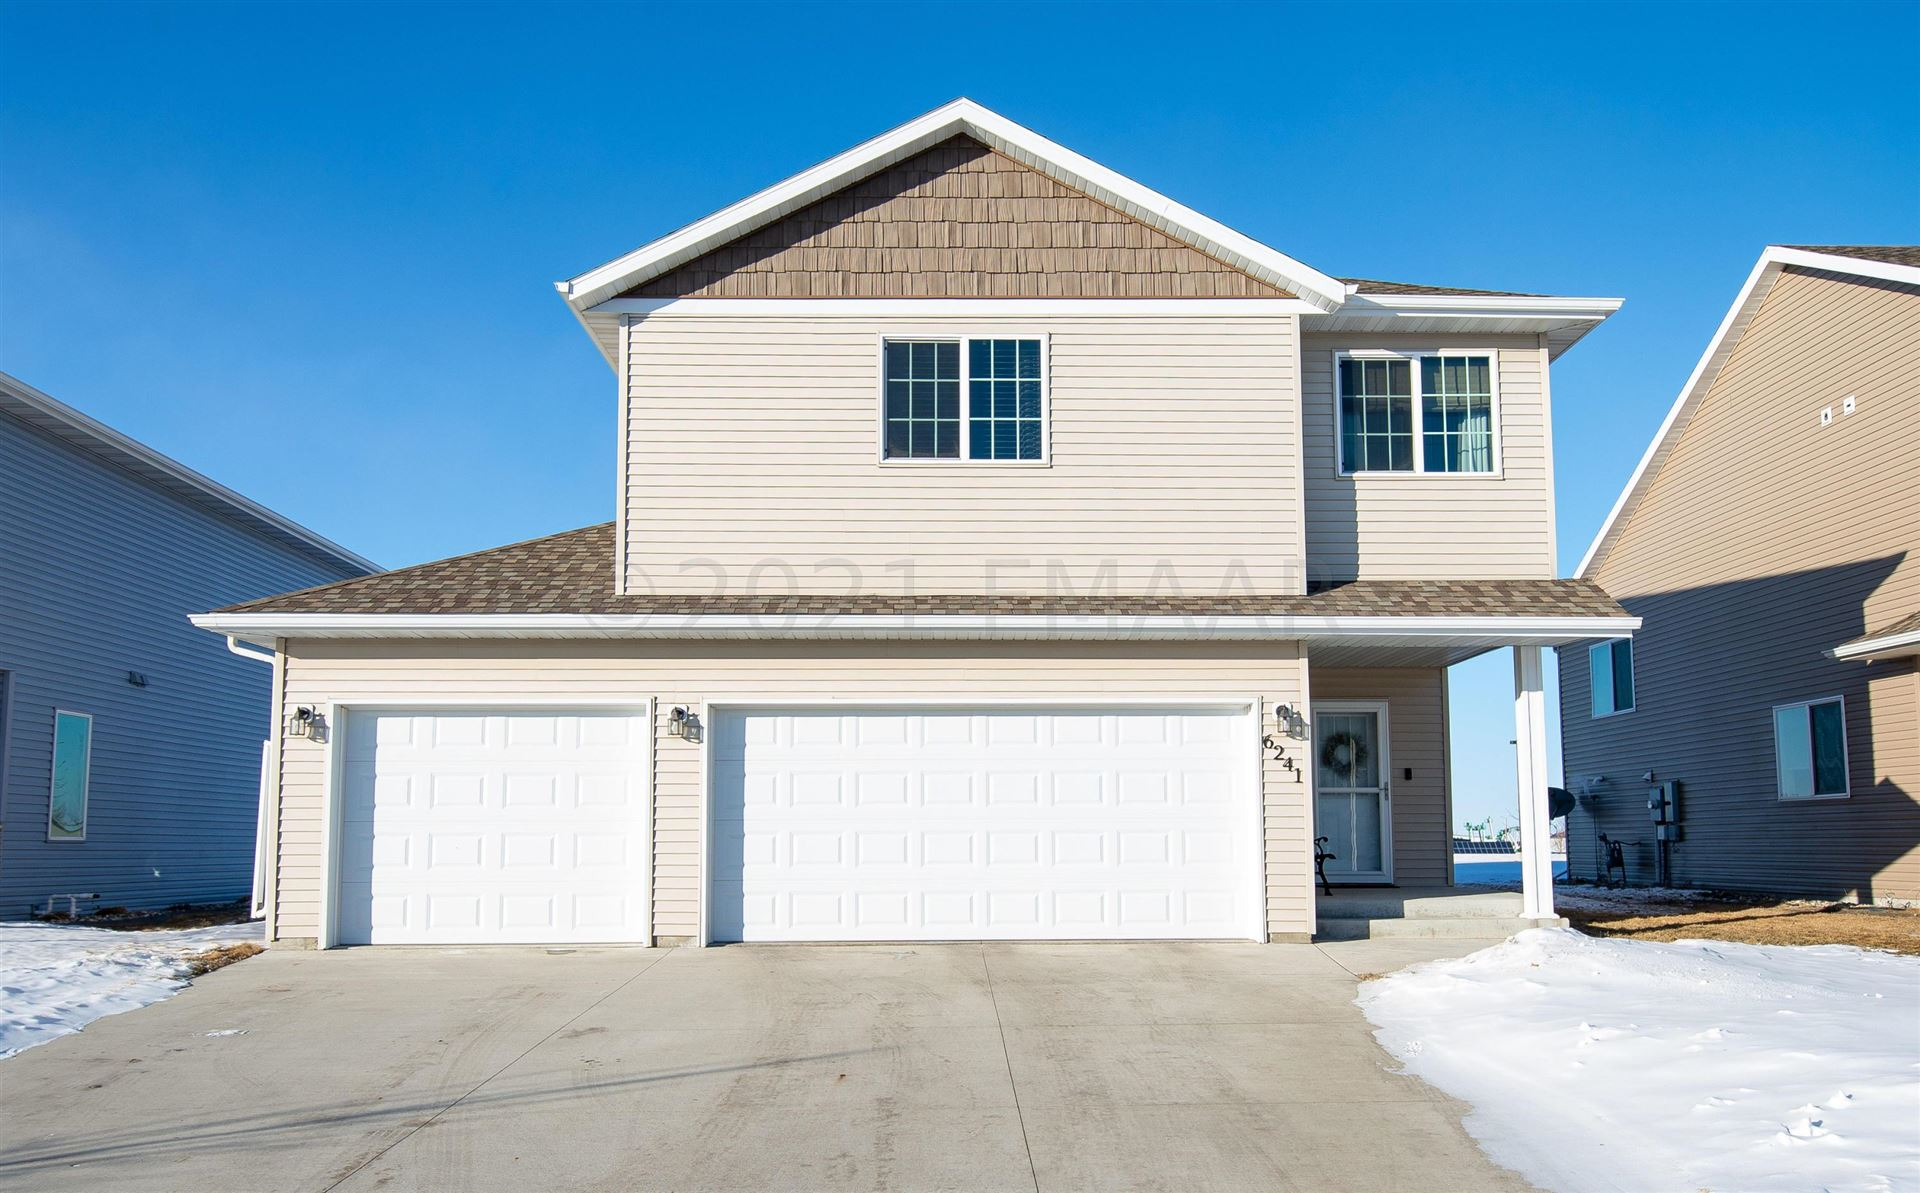 6241 55 Avenue S, Fargo, ND 58104 - #: 21-693